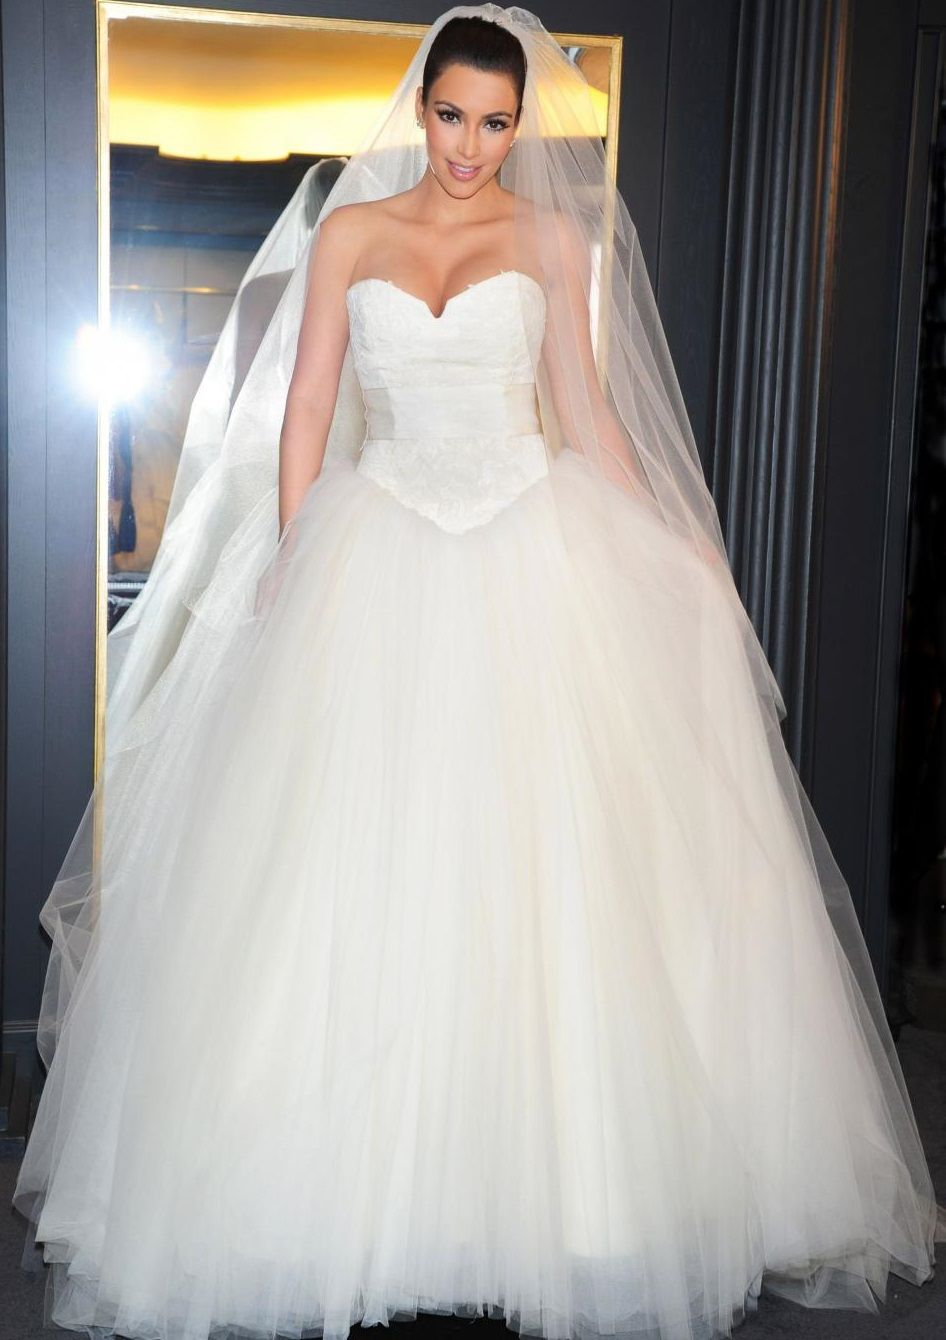 Celebrity Wedding Dresses: Top 12 Most Noticeable Gowns ...